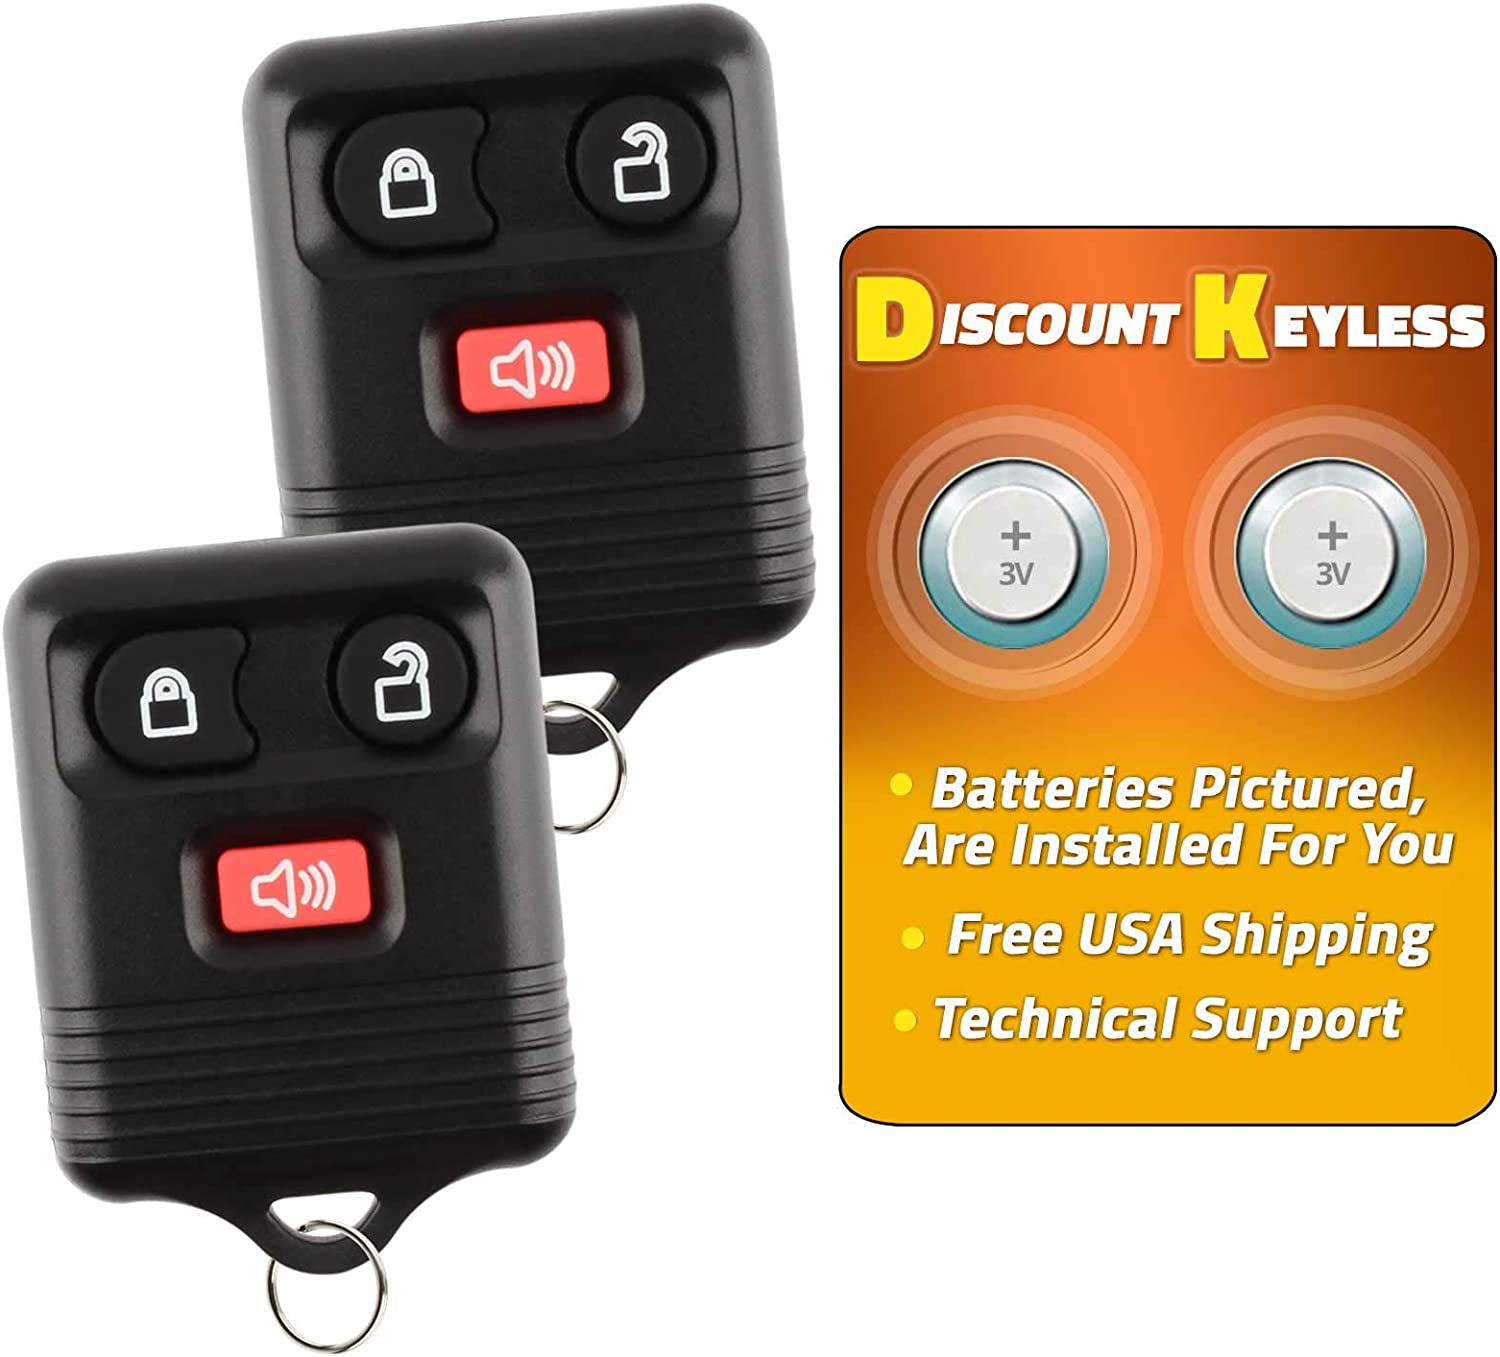 YITAMOTOR 2 New Car Key Fob Keyless Entry Remote Control 4 Button for CWTWB1U212 CWTWB1U331 CWTWB1U345 GQ43VT11T